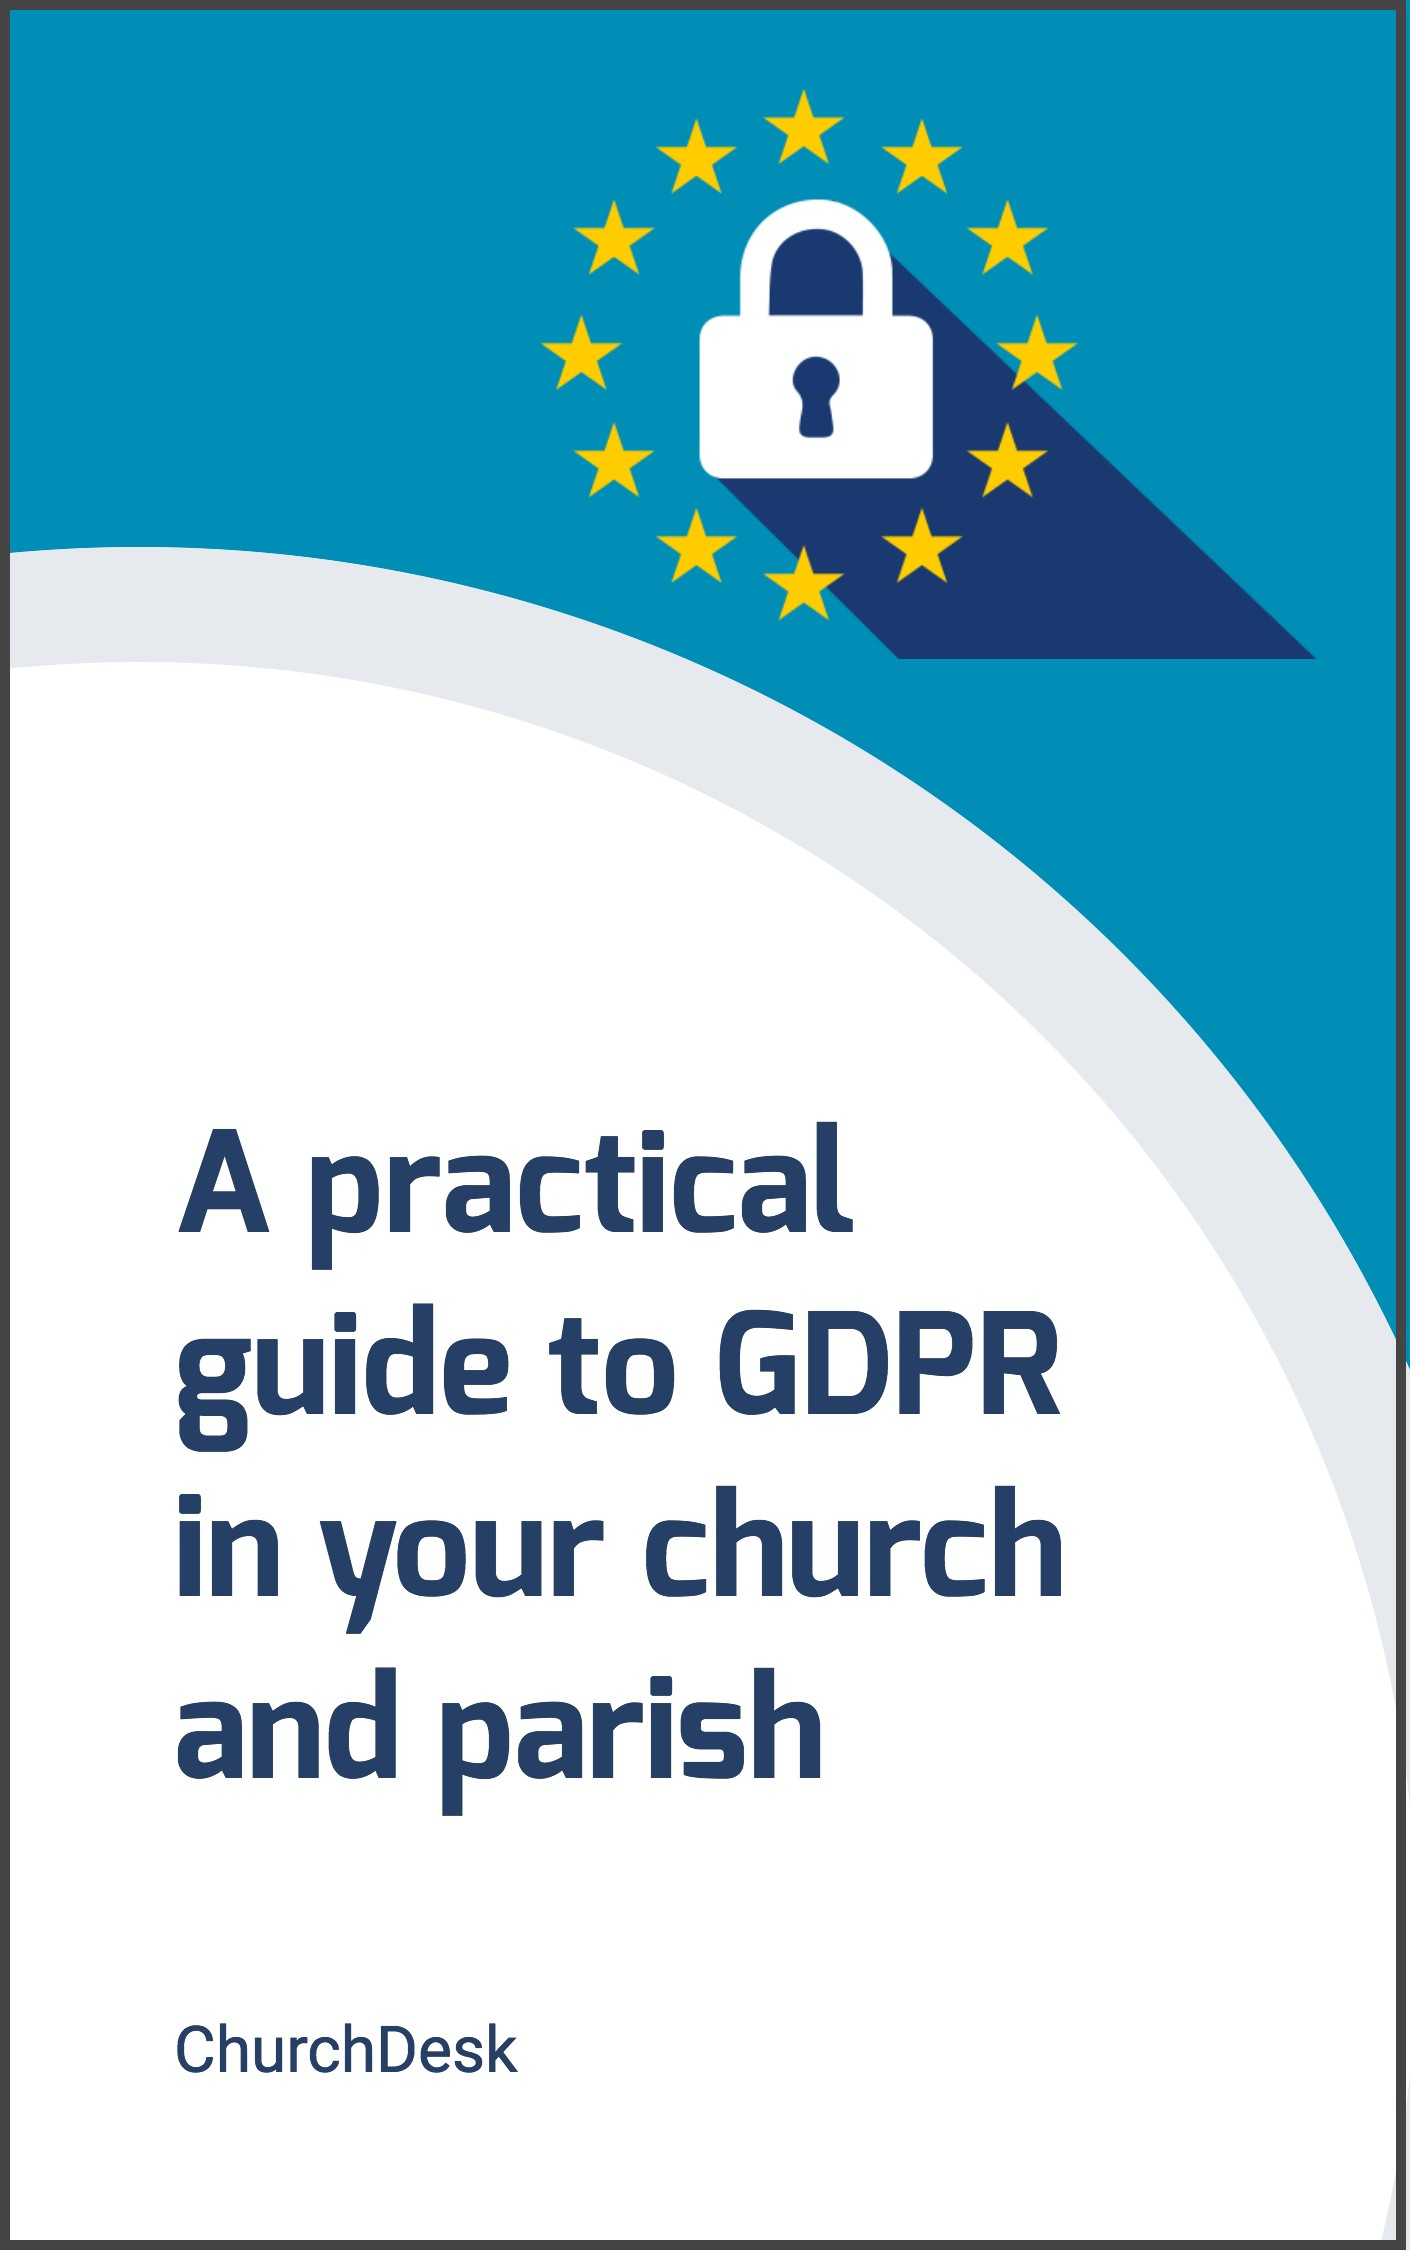 ChurchDesk-GDPR-guide-UK.jpg